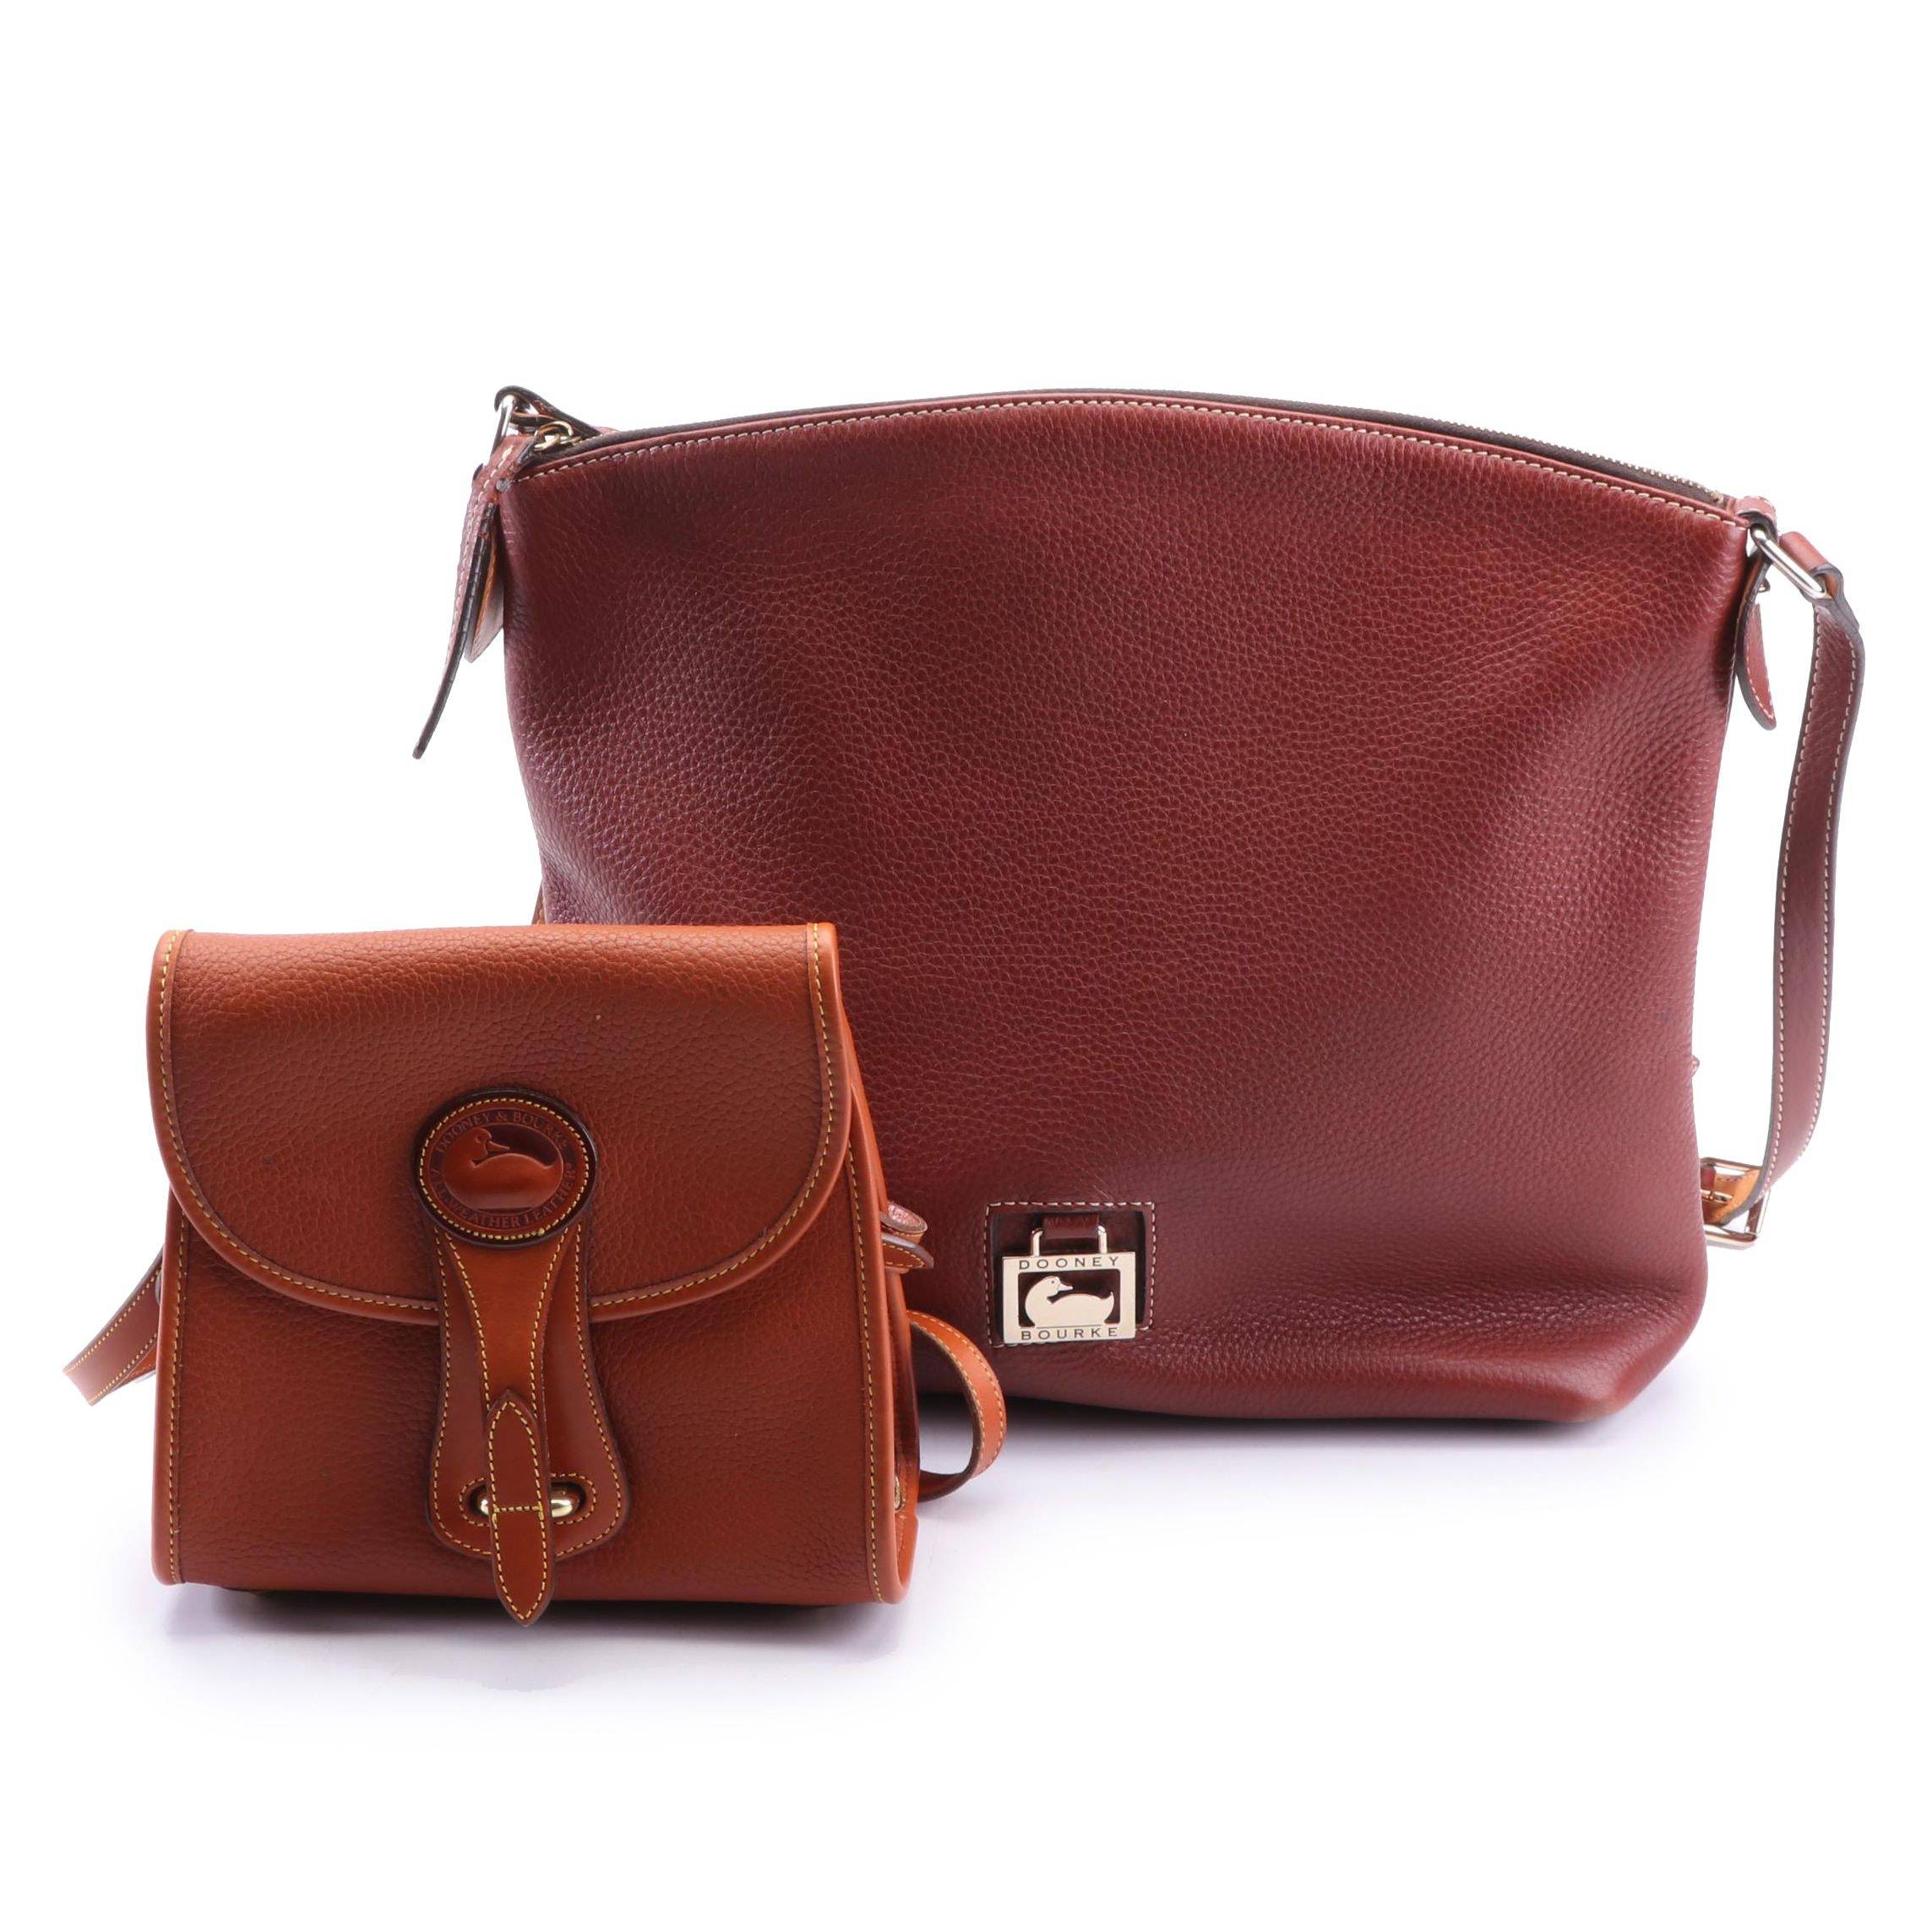 Dooney & Bourke Pebbled Leather Shoulder Bags